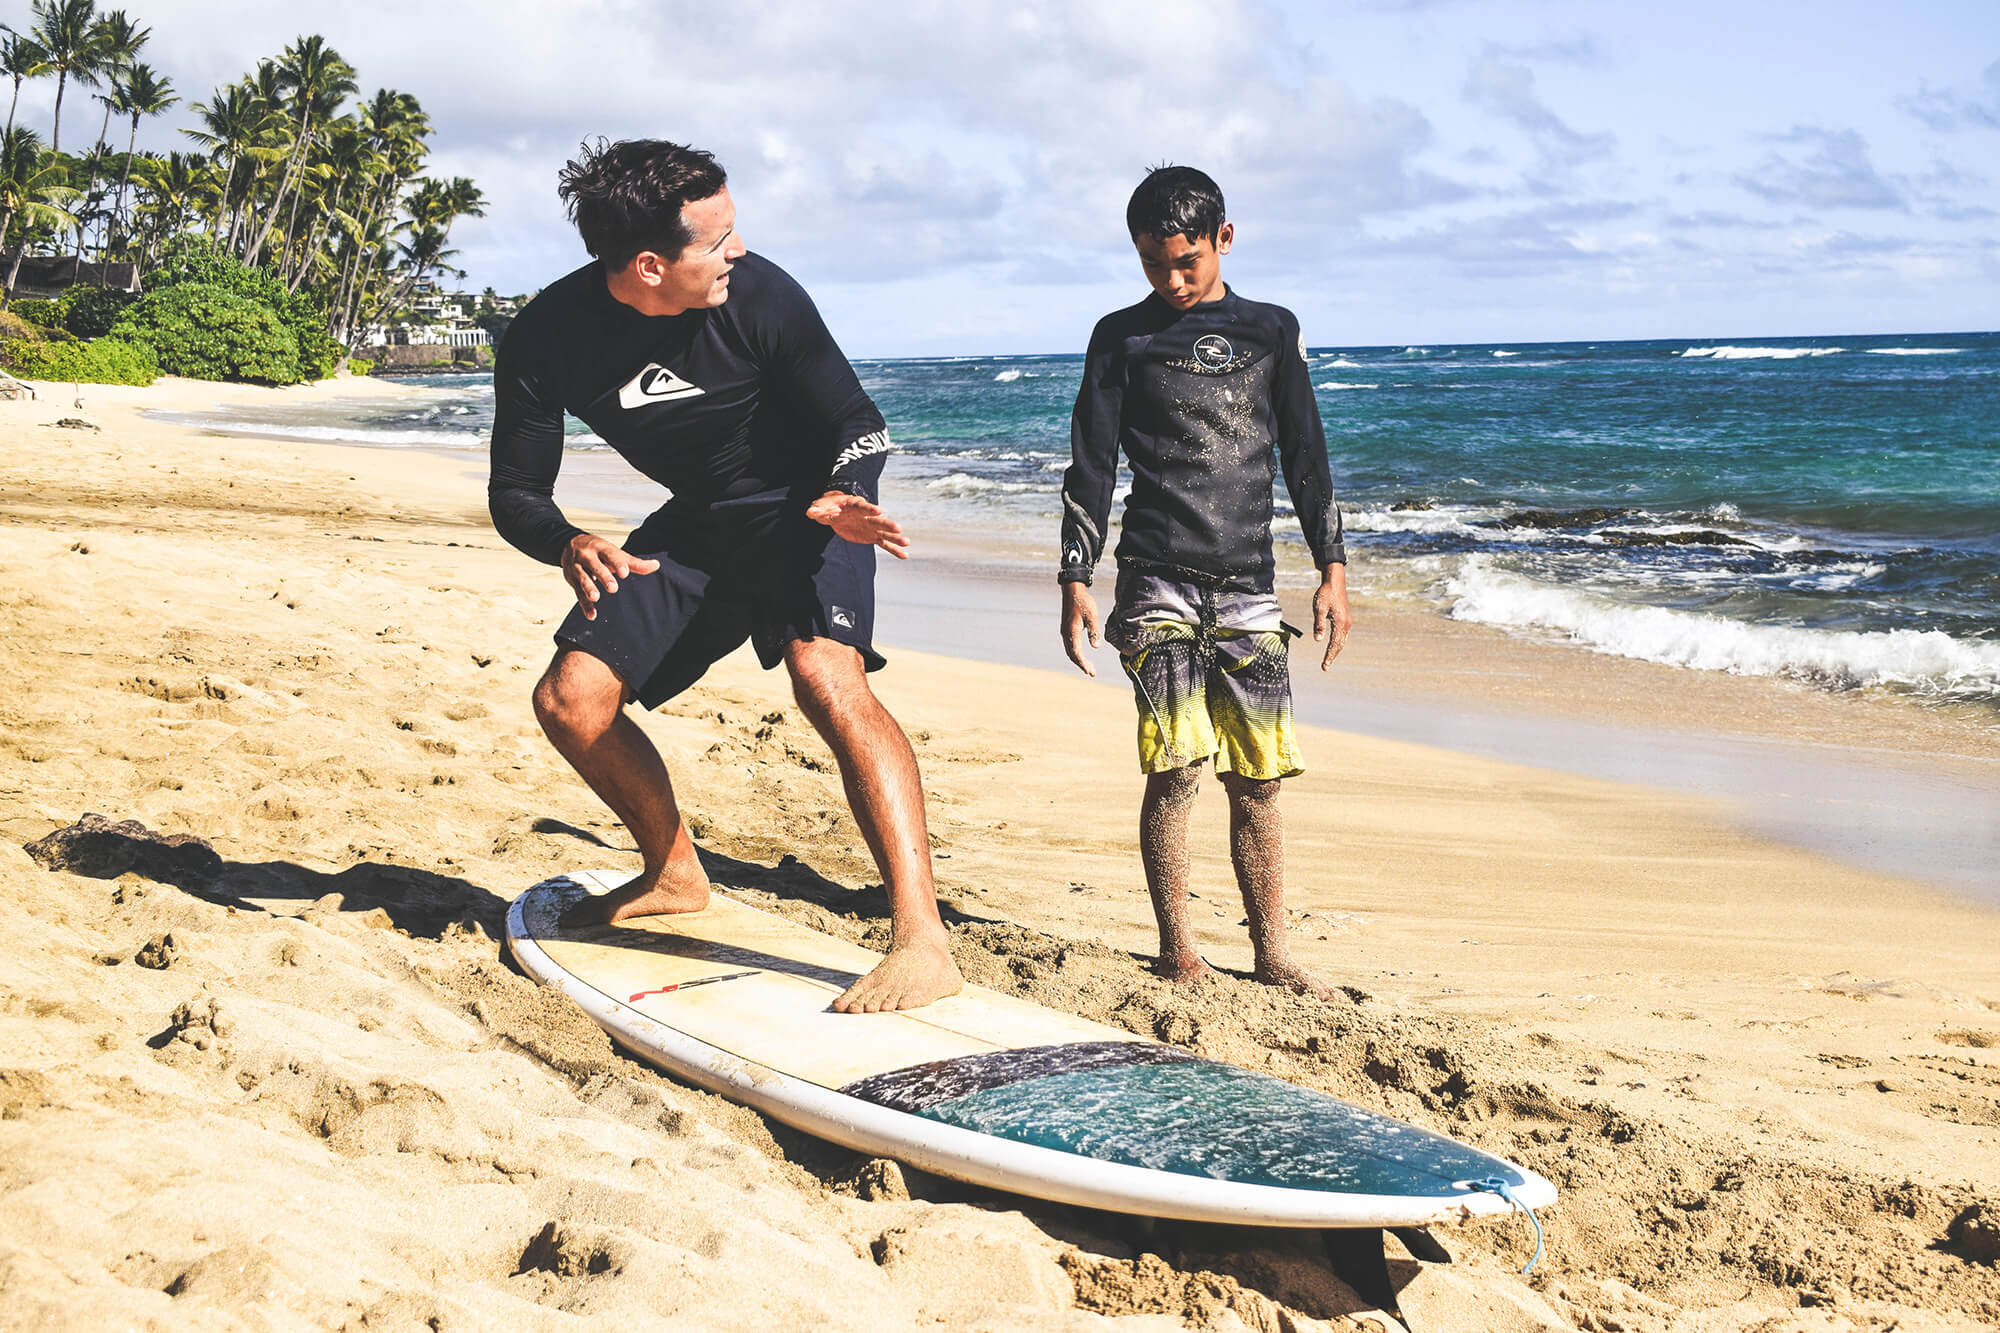 kid learning to surf on land